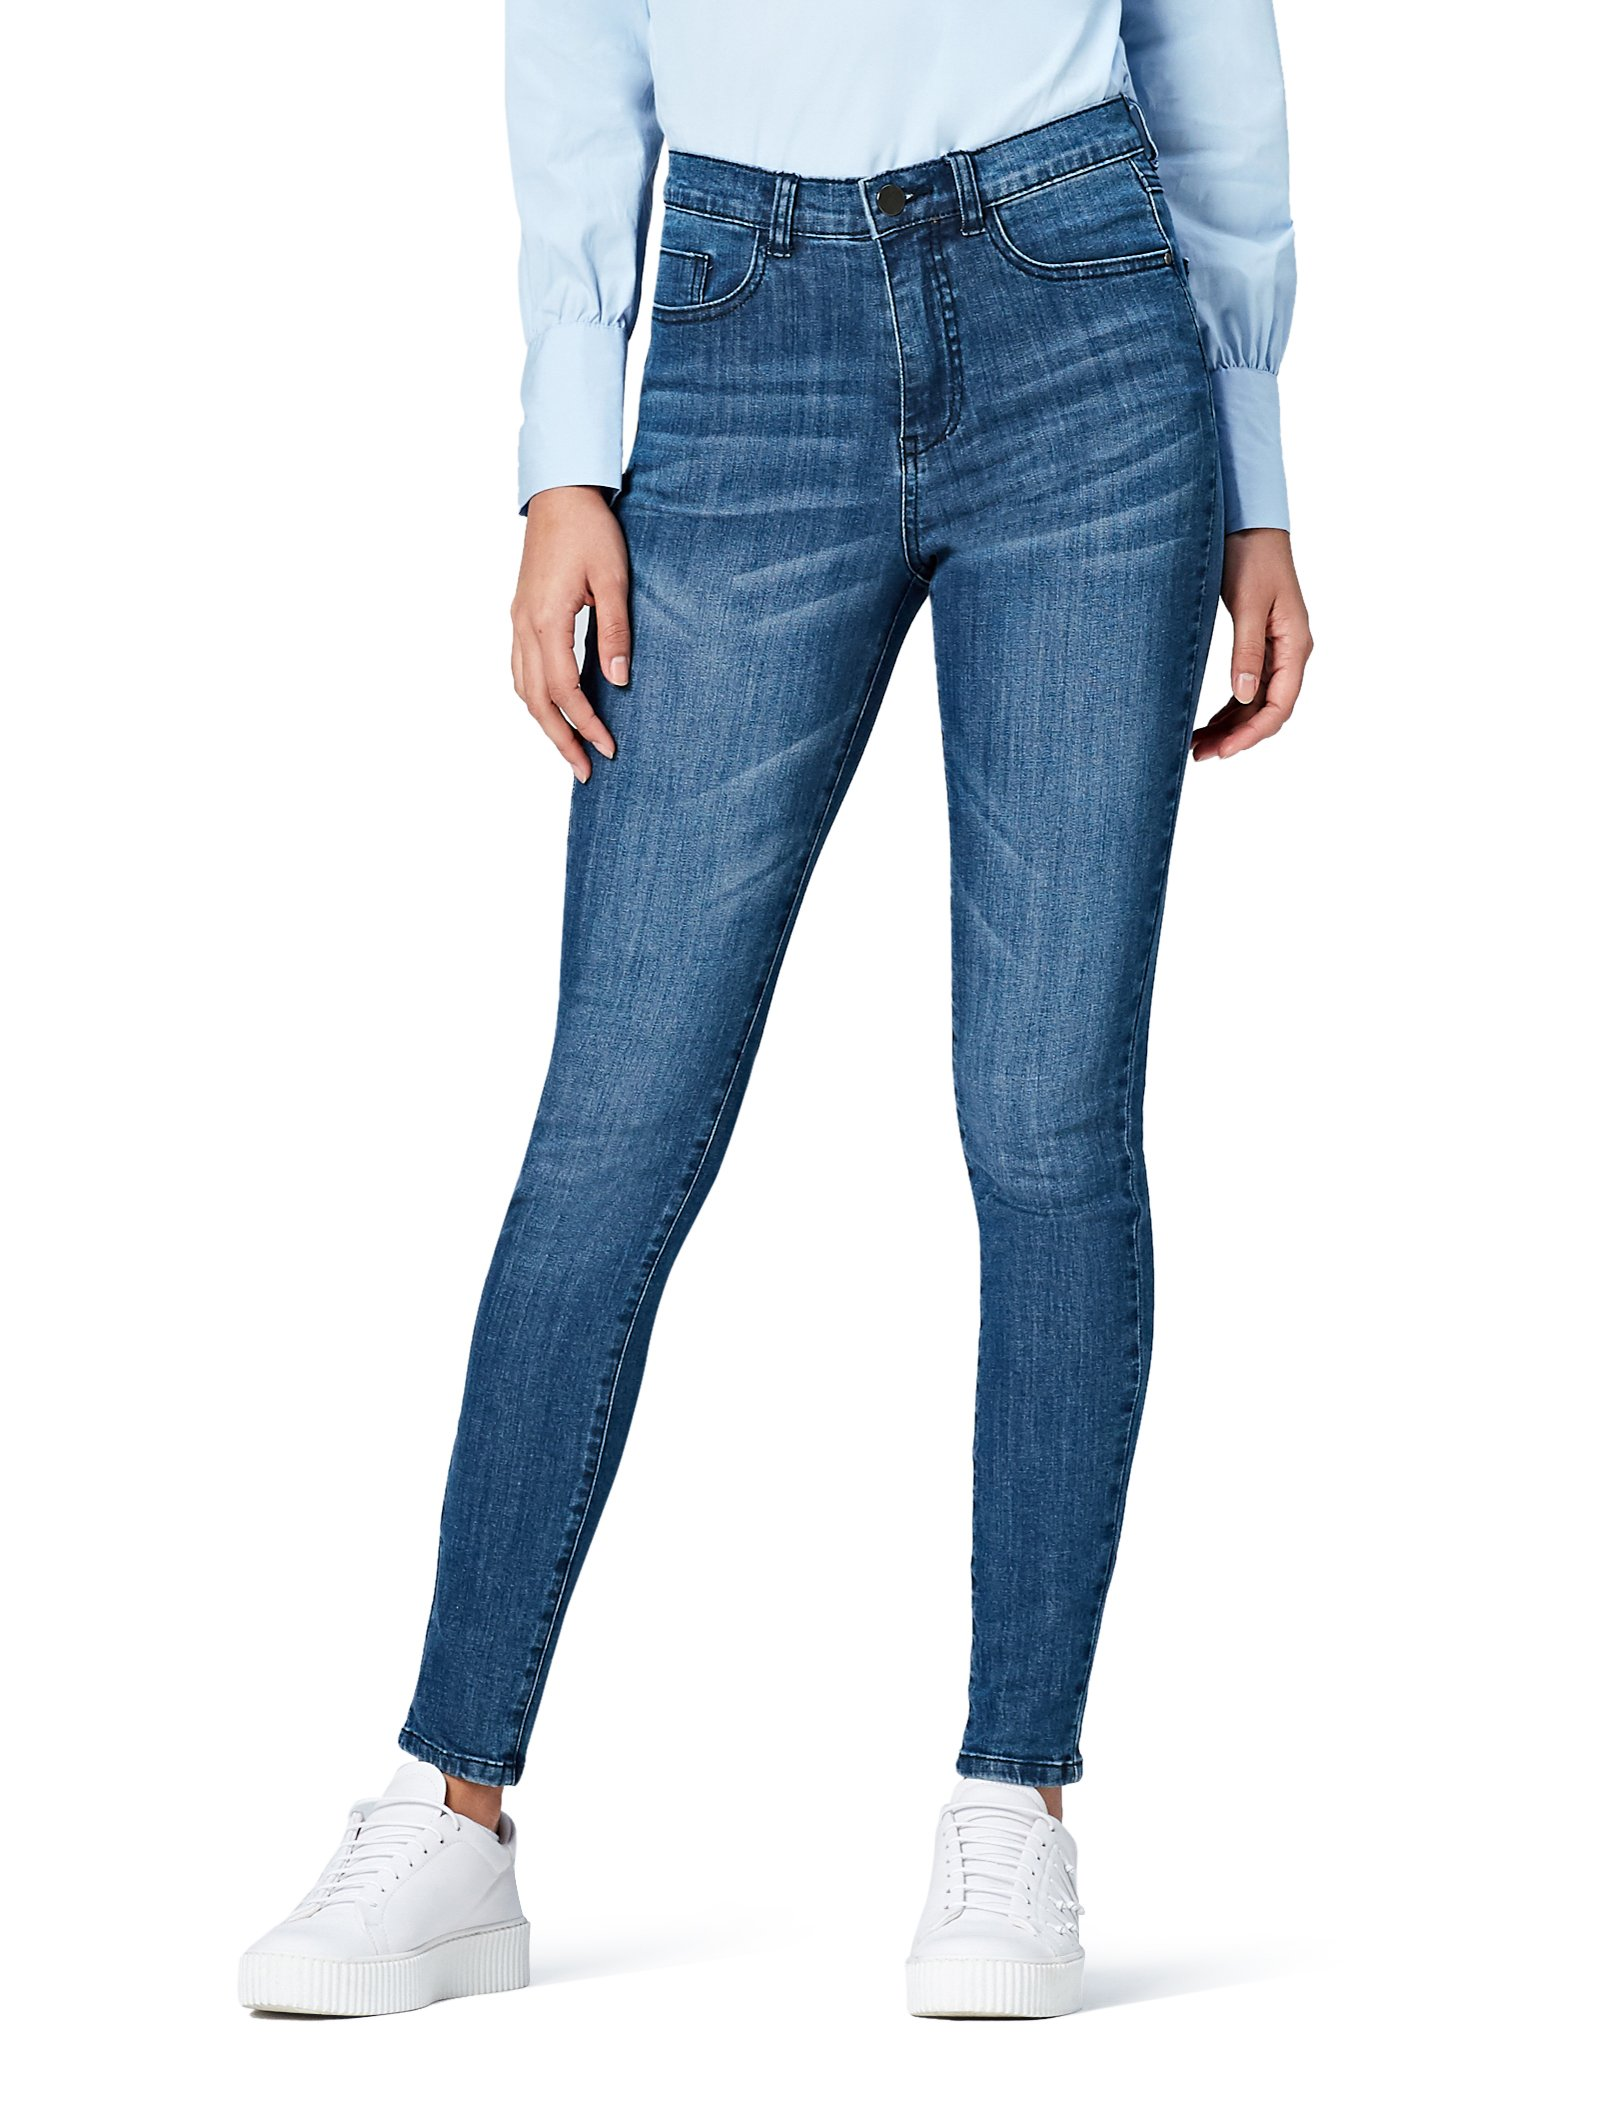 Damen-Jeans im Amazon Jeans-Store 2e57654107